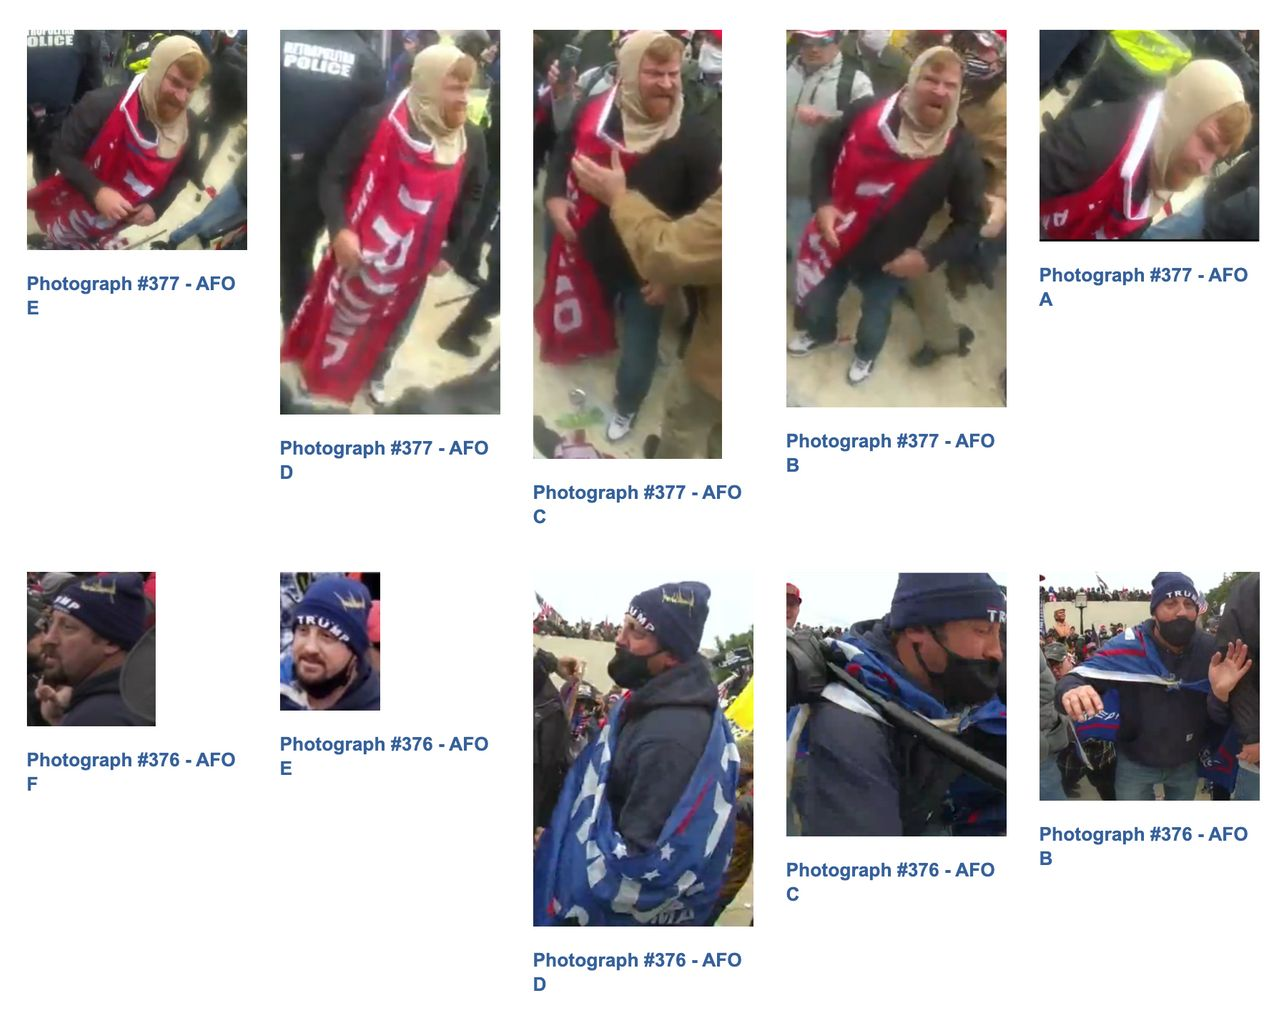 Images on the FBI's website of Trump supporters wanted for assaulting federal officers on Jan. 6.